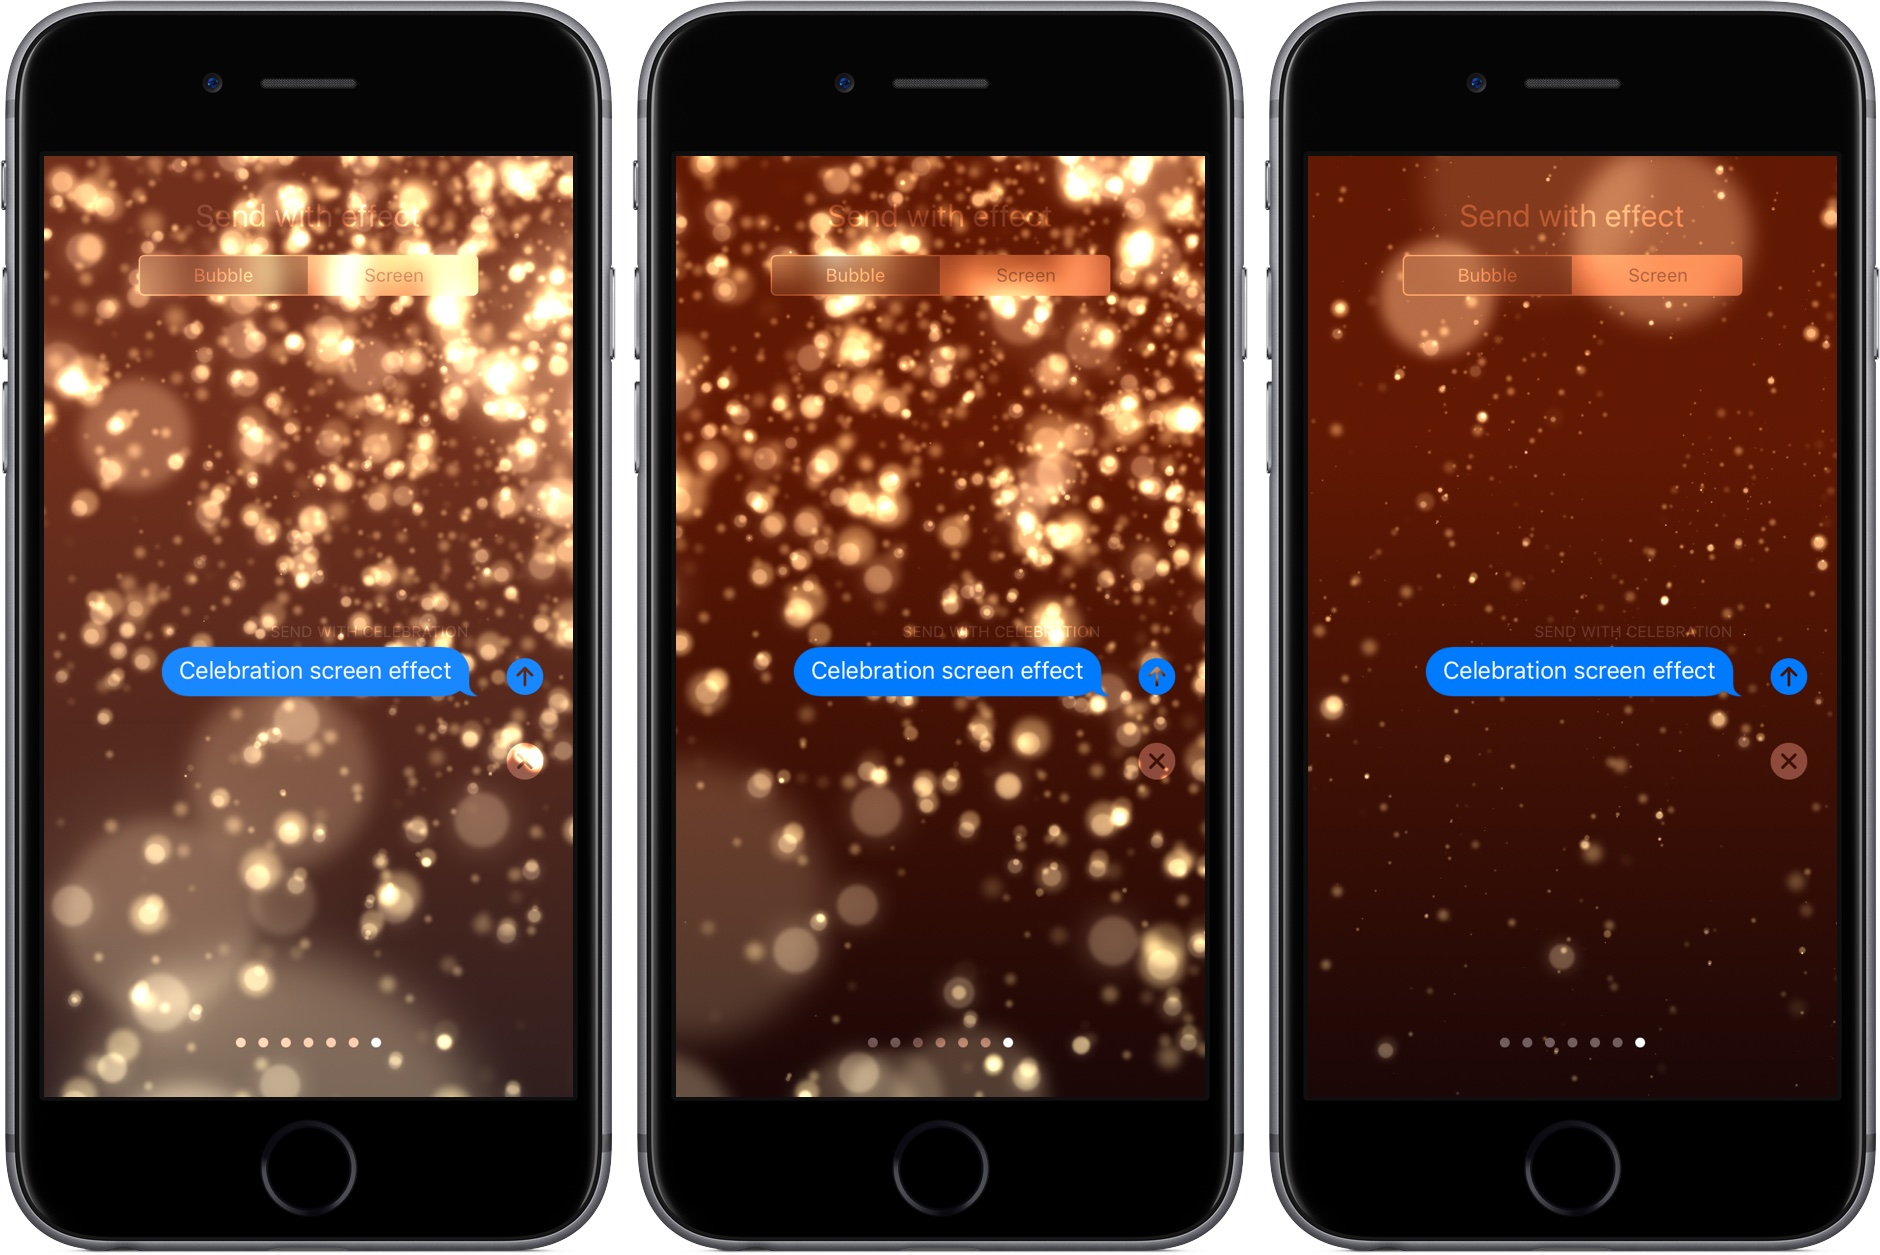 ios-10-2-messages-celebration-screen-effect-iphone-screenshot-001